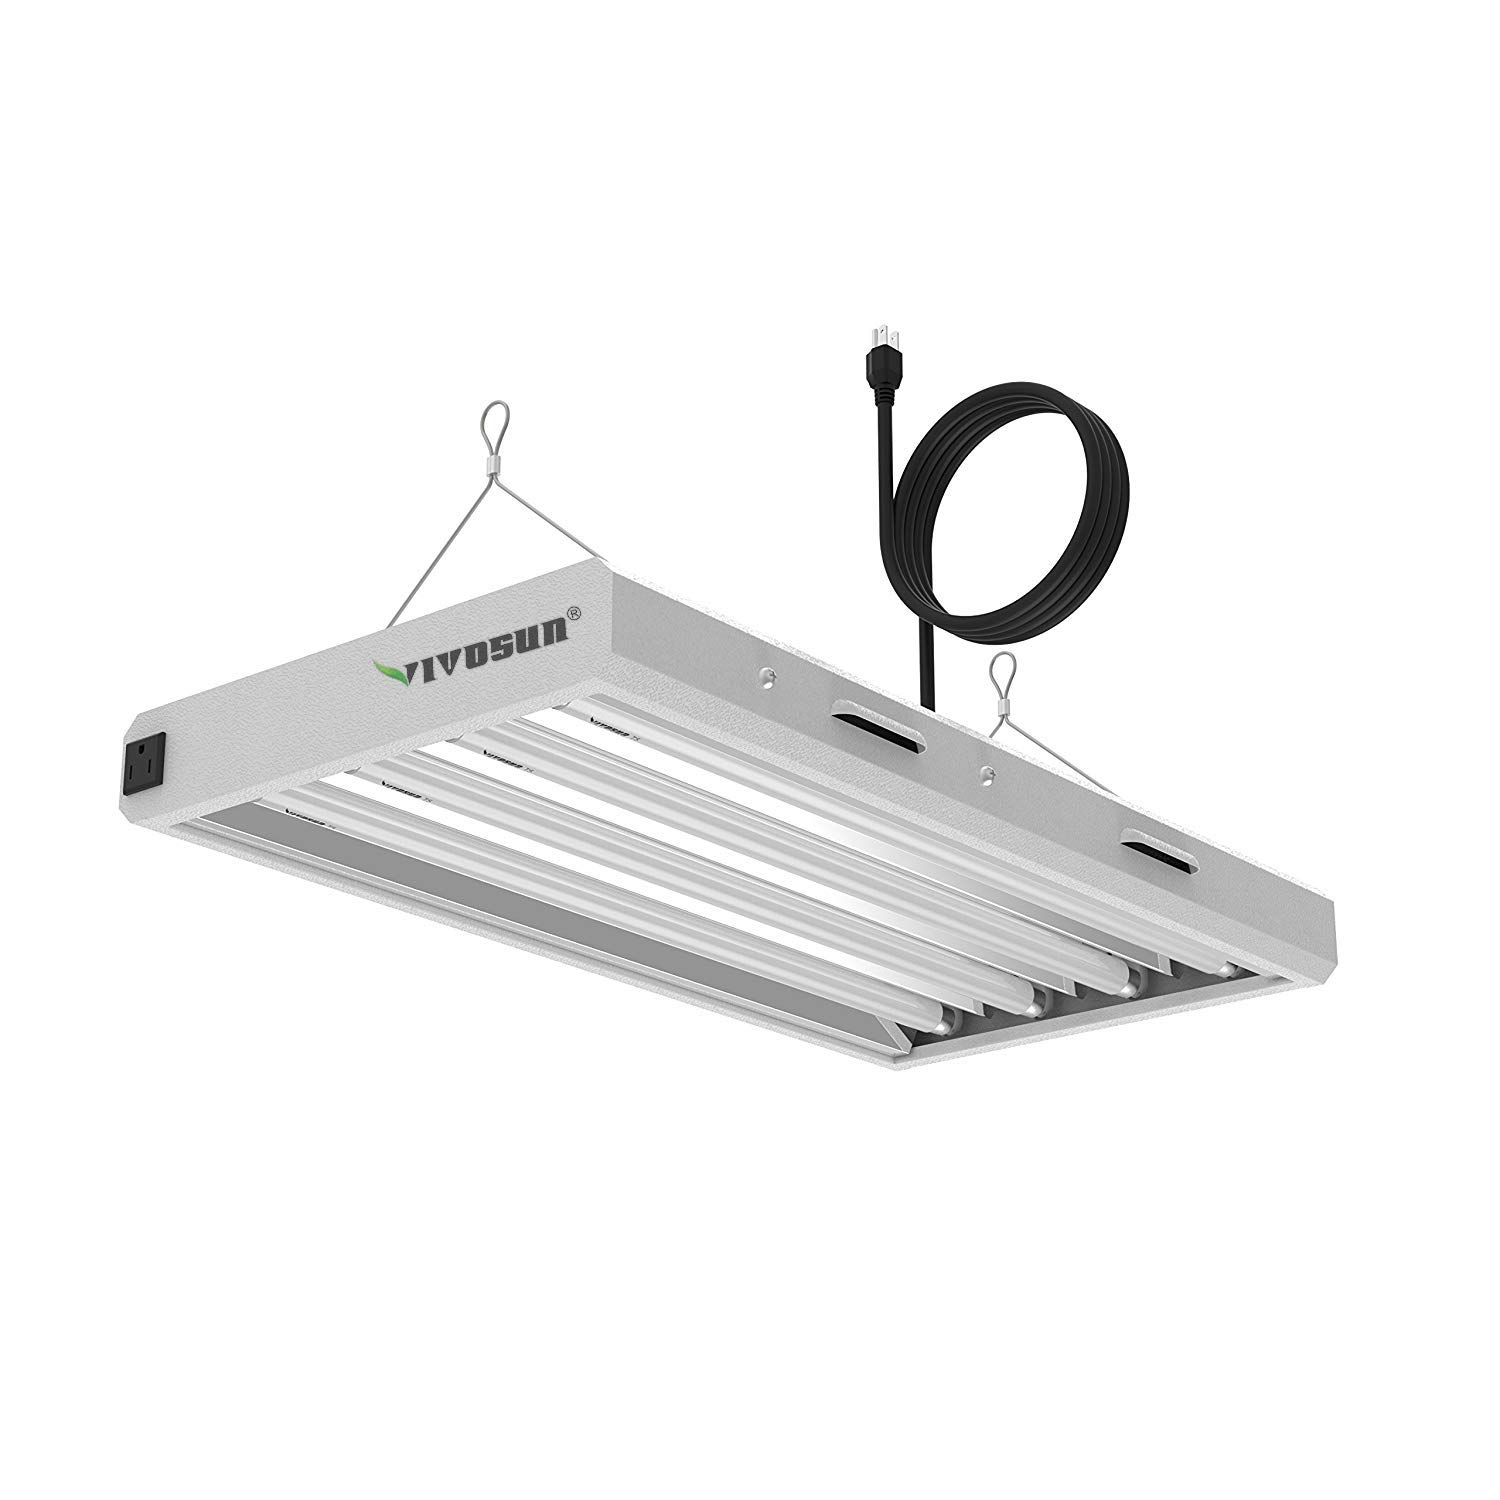 Vivosun 6500k 2ft t5 ho fluorescent grow light fixture for indoor plants ul listed high output fluorescent tubes 4 lamps